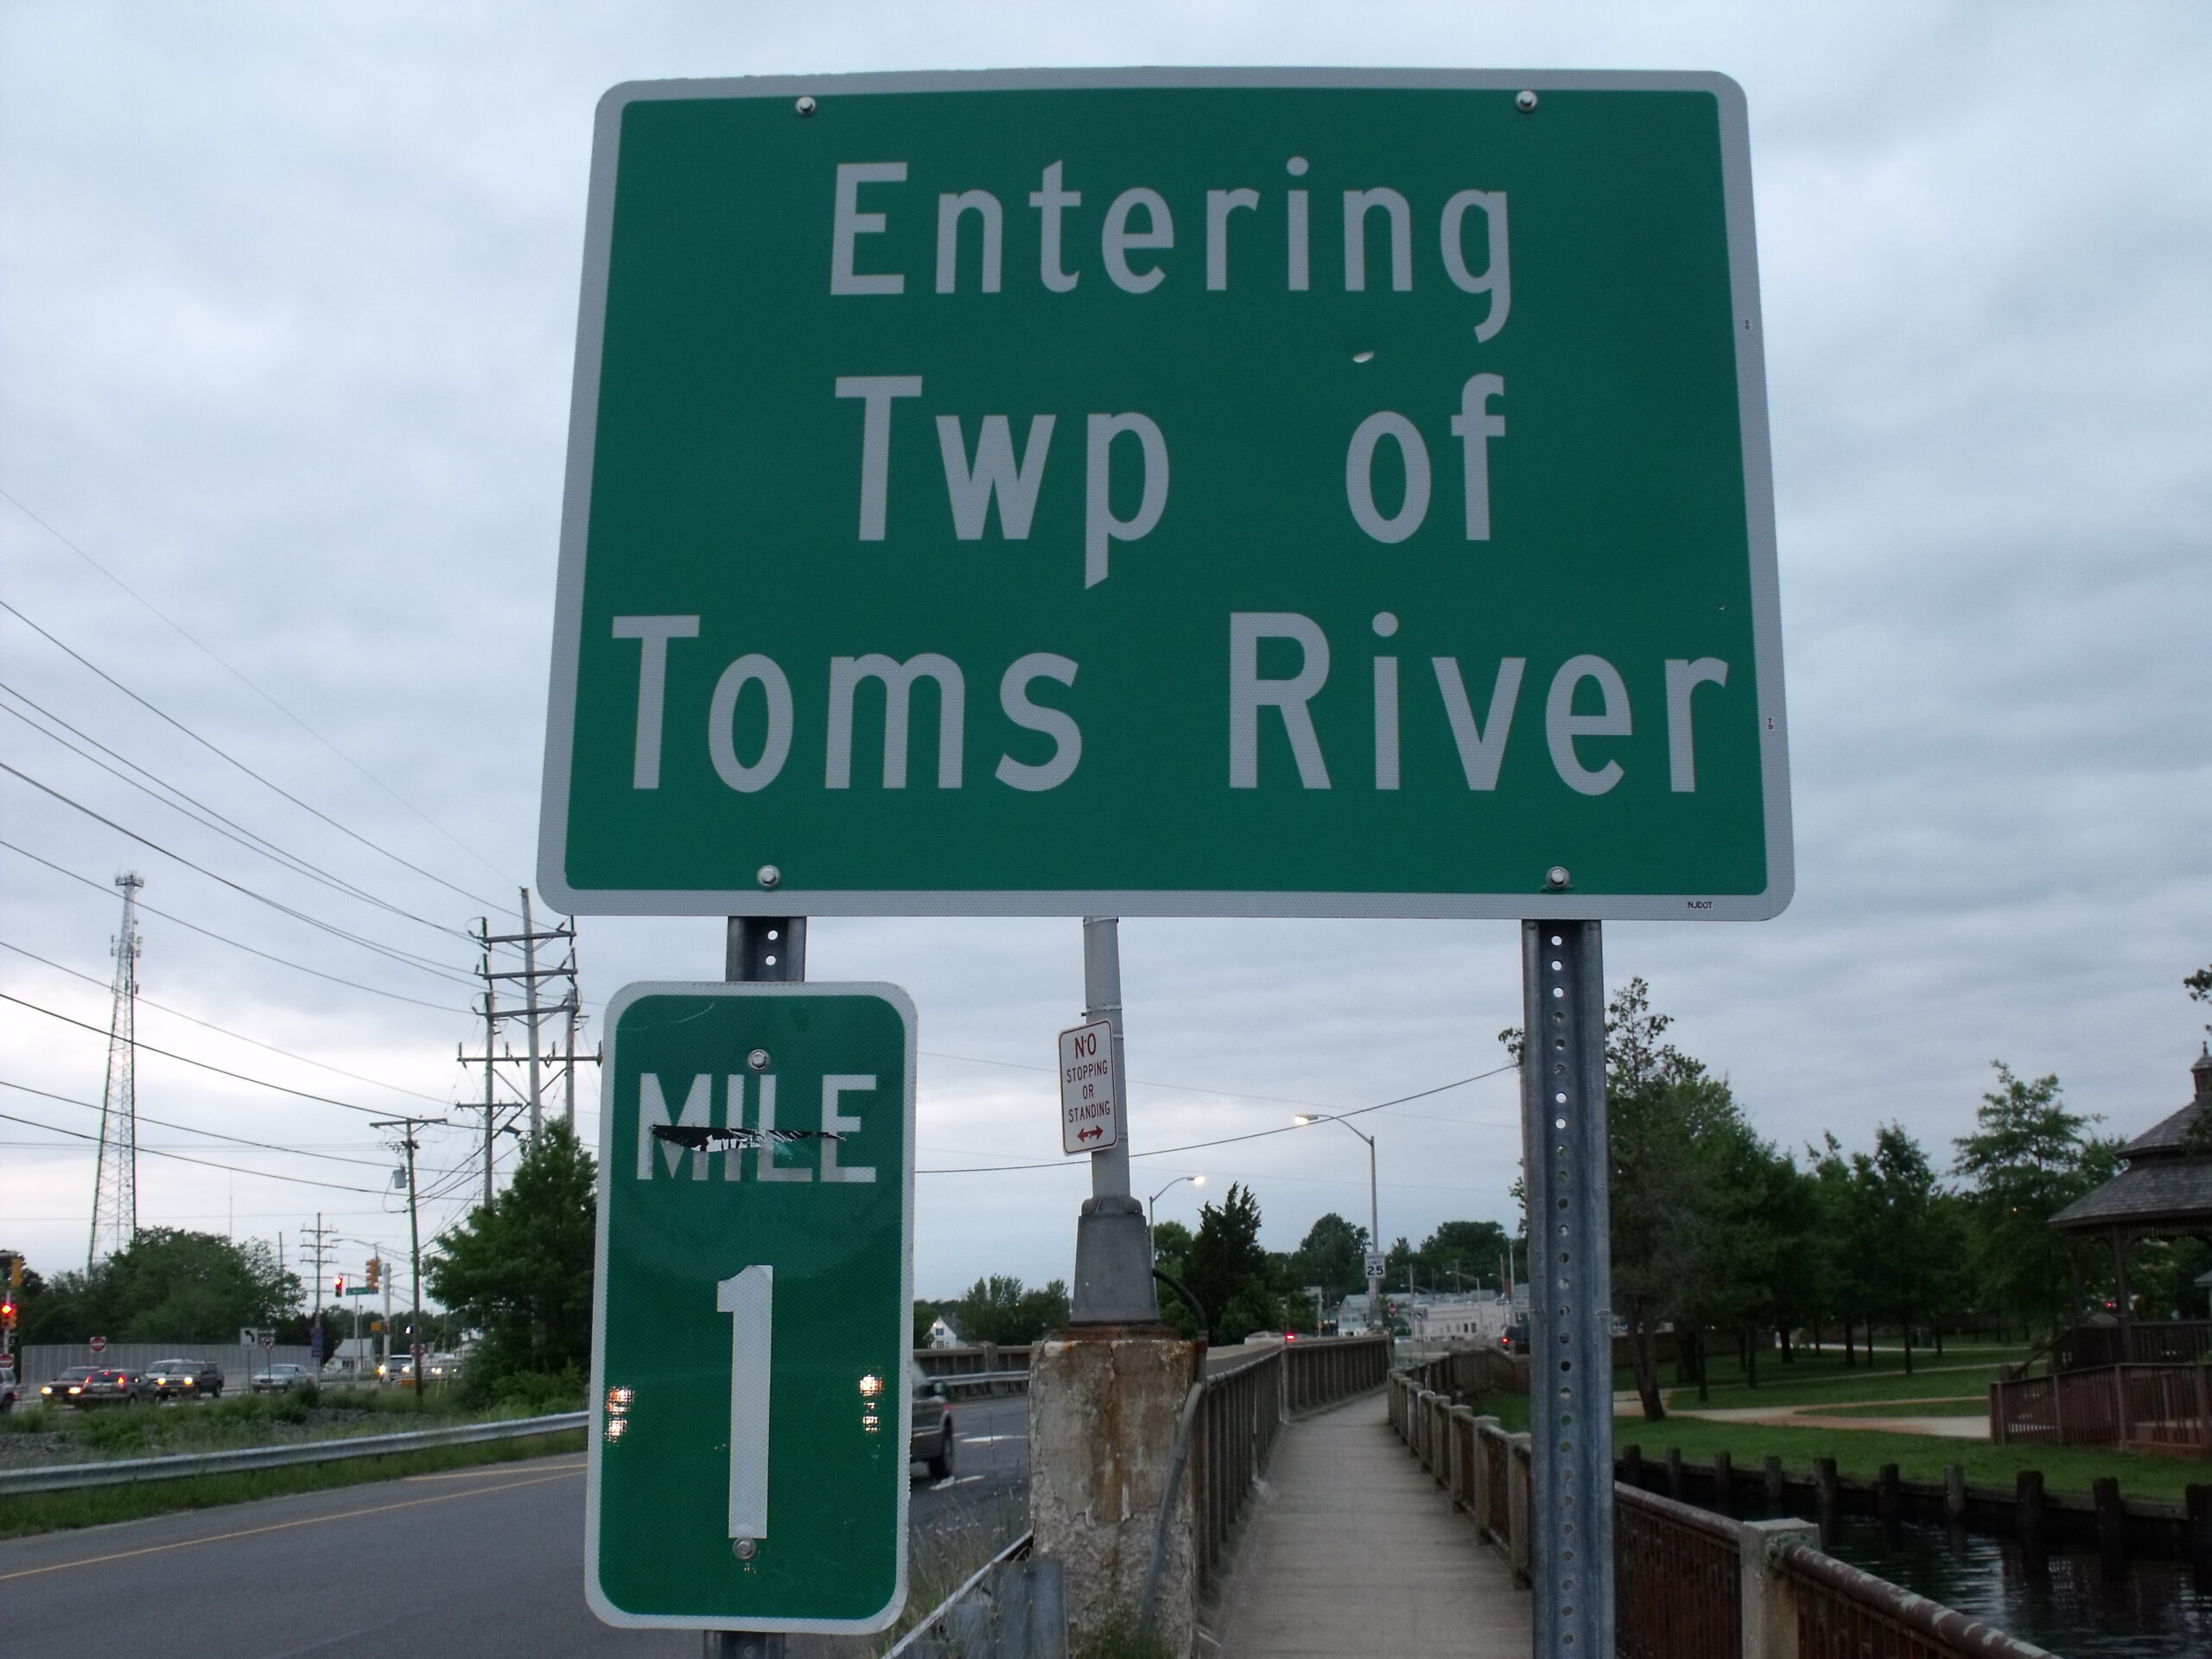 TOMS RIVER: MOTOR VEHICLE ACCIDENT